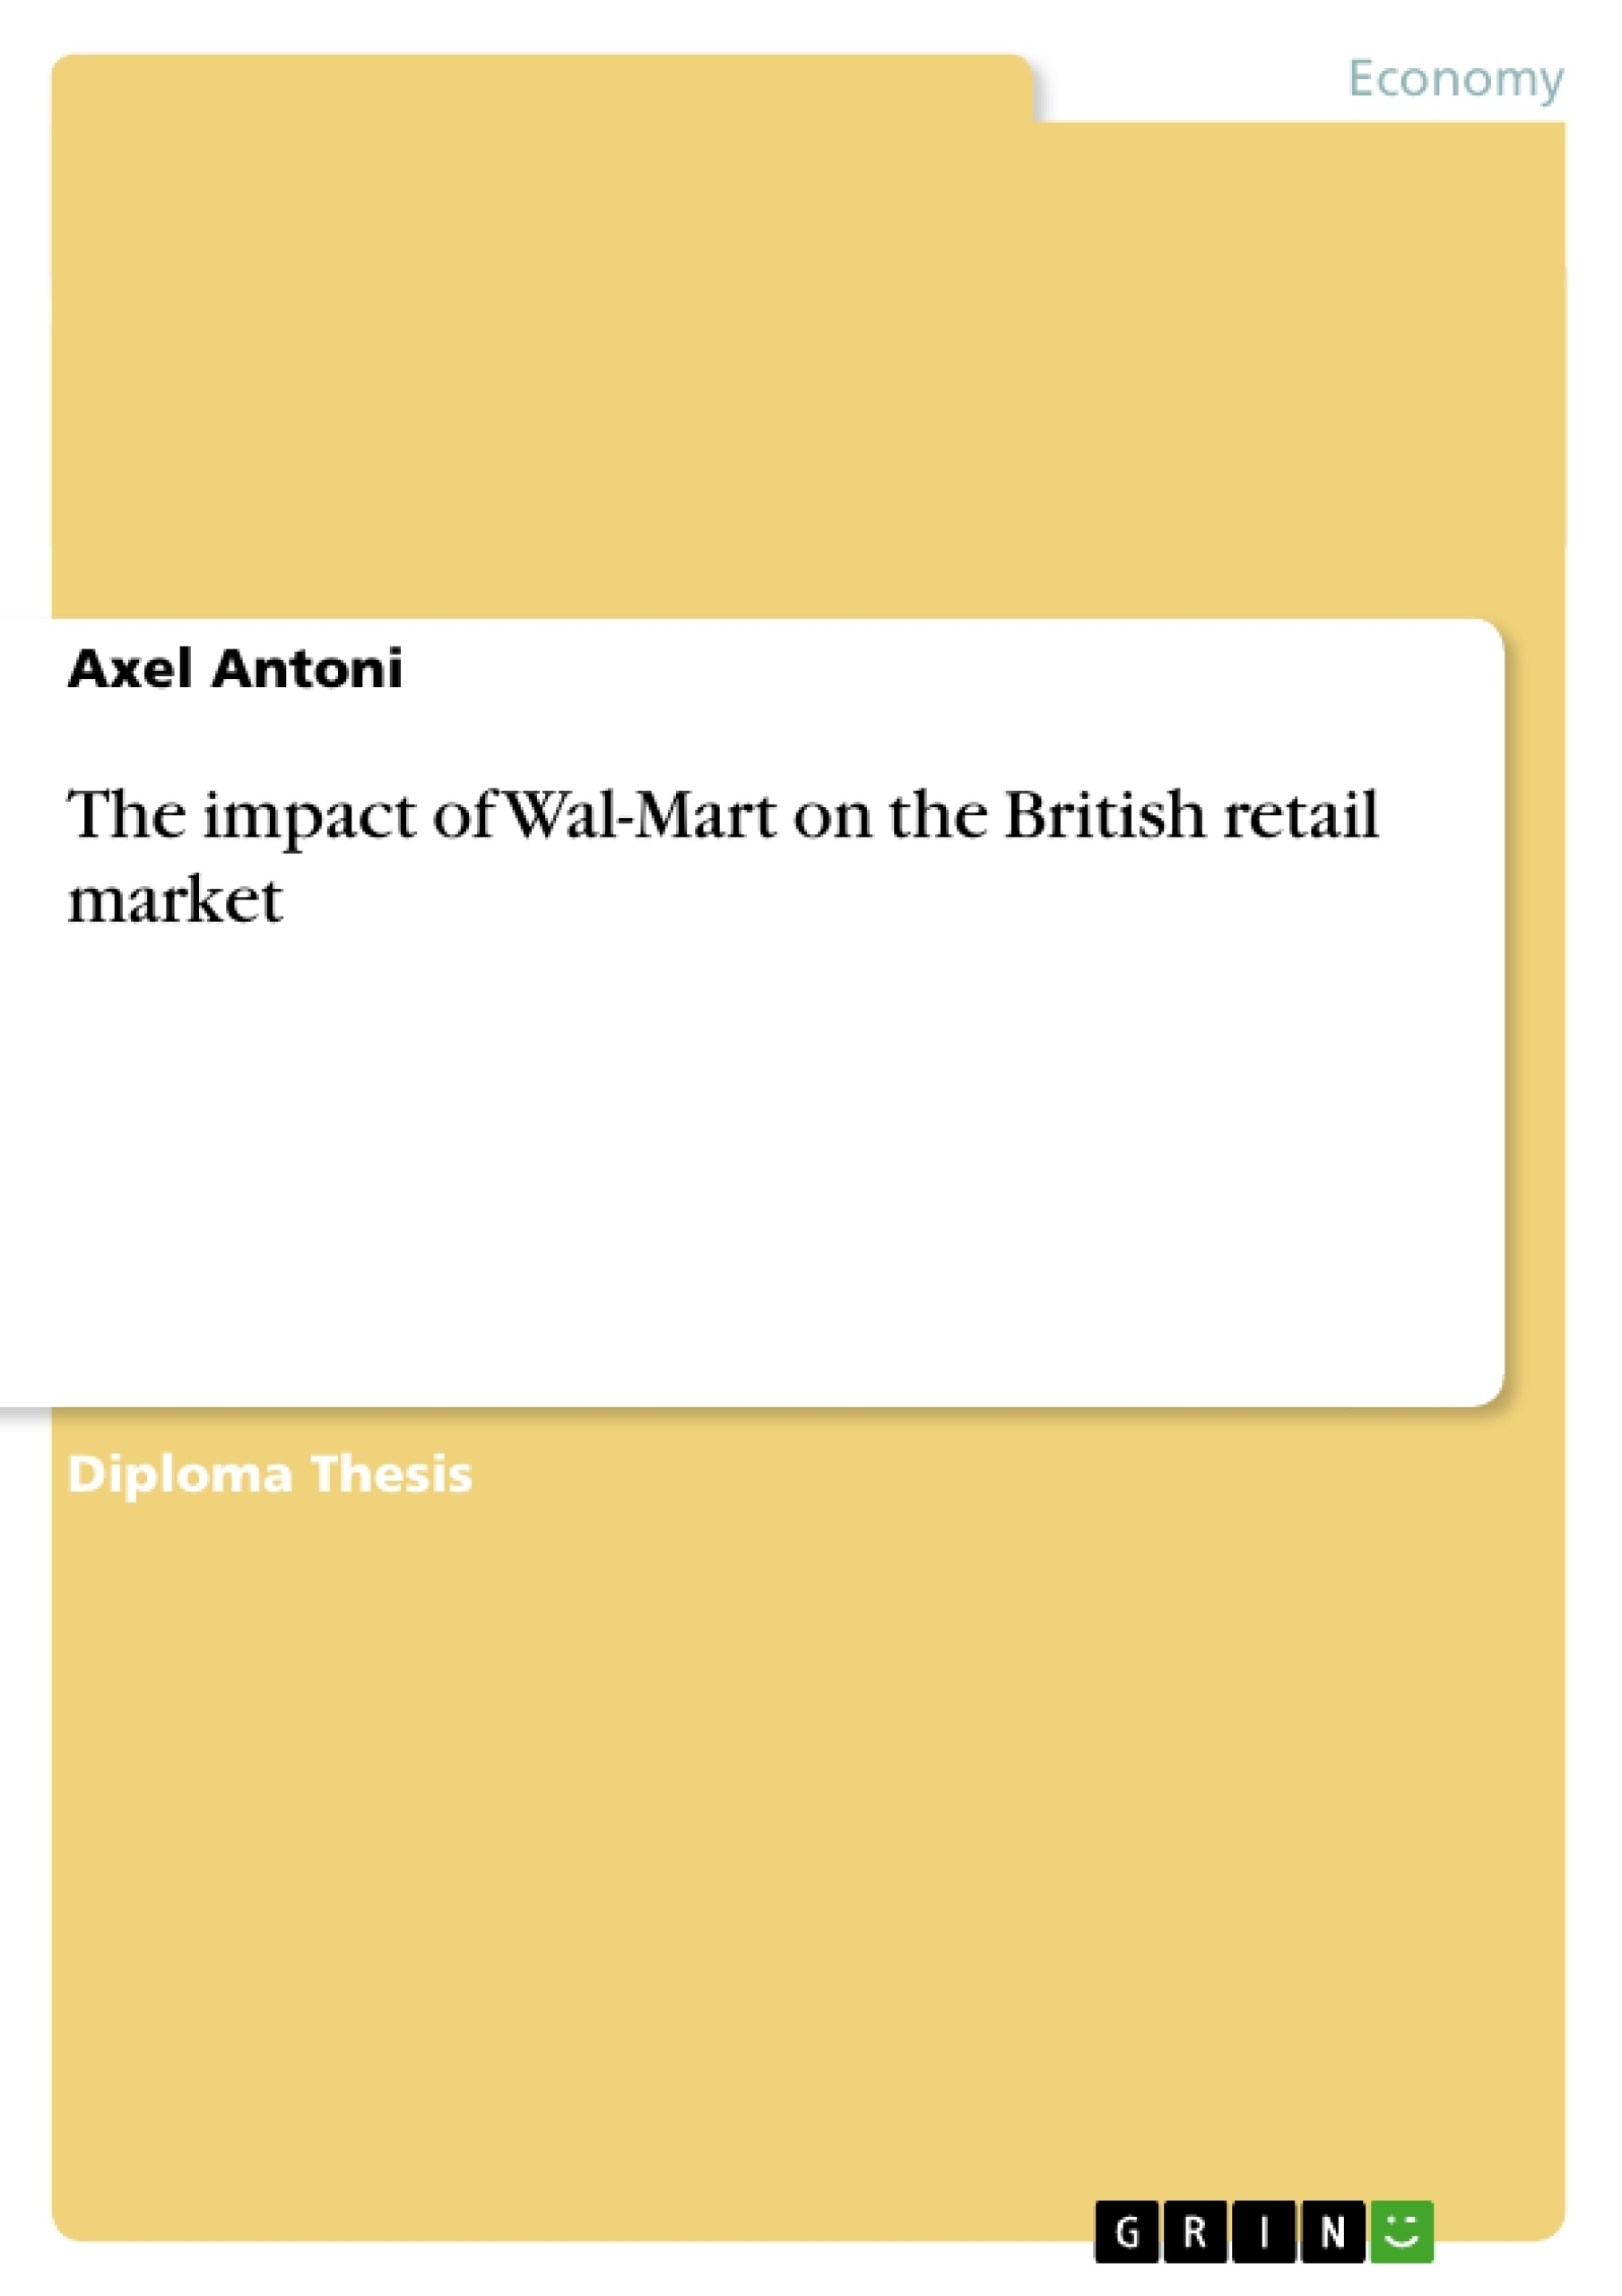 the wal mart effect essay